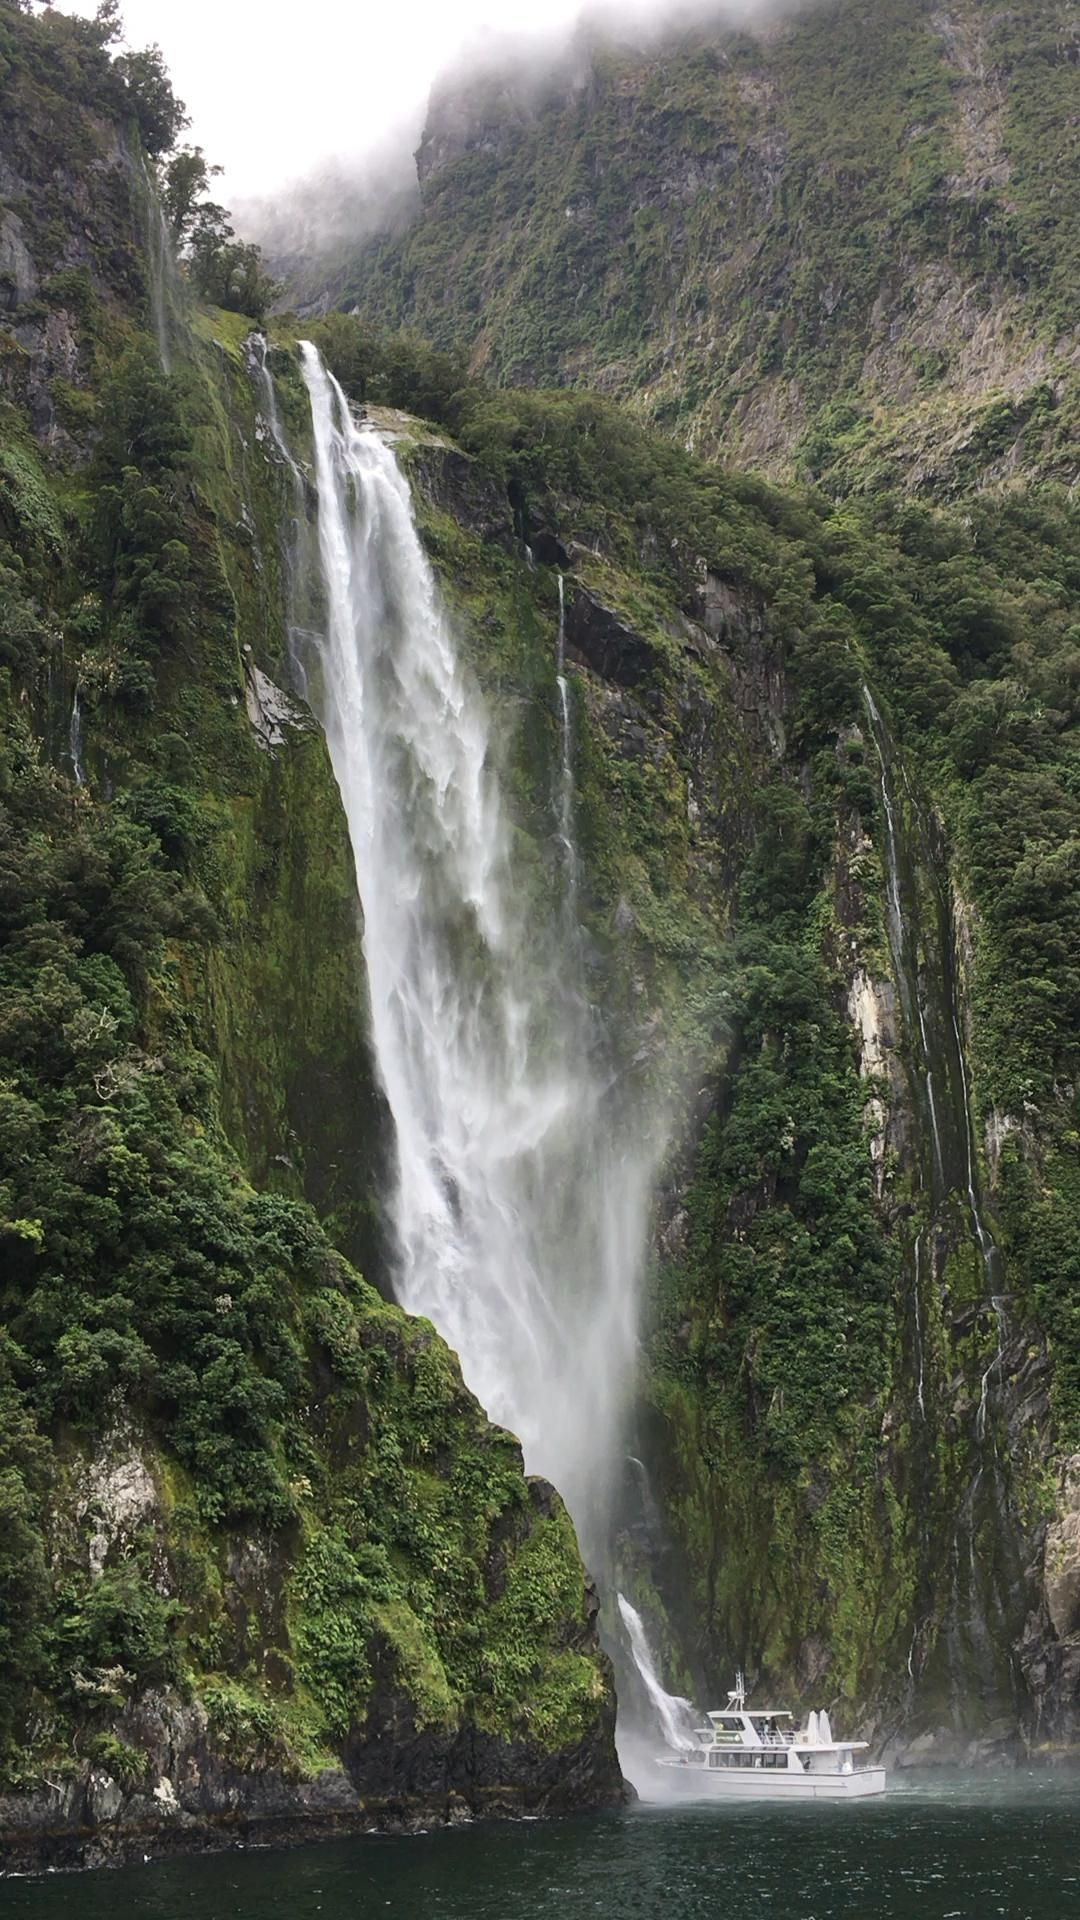 A day trip to Milford Sound, New Zealand  #milfordsound #fjords #nz #newzealand #travel #guide #daytrip #boat #cruise #queenstown #southisland #tour